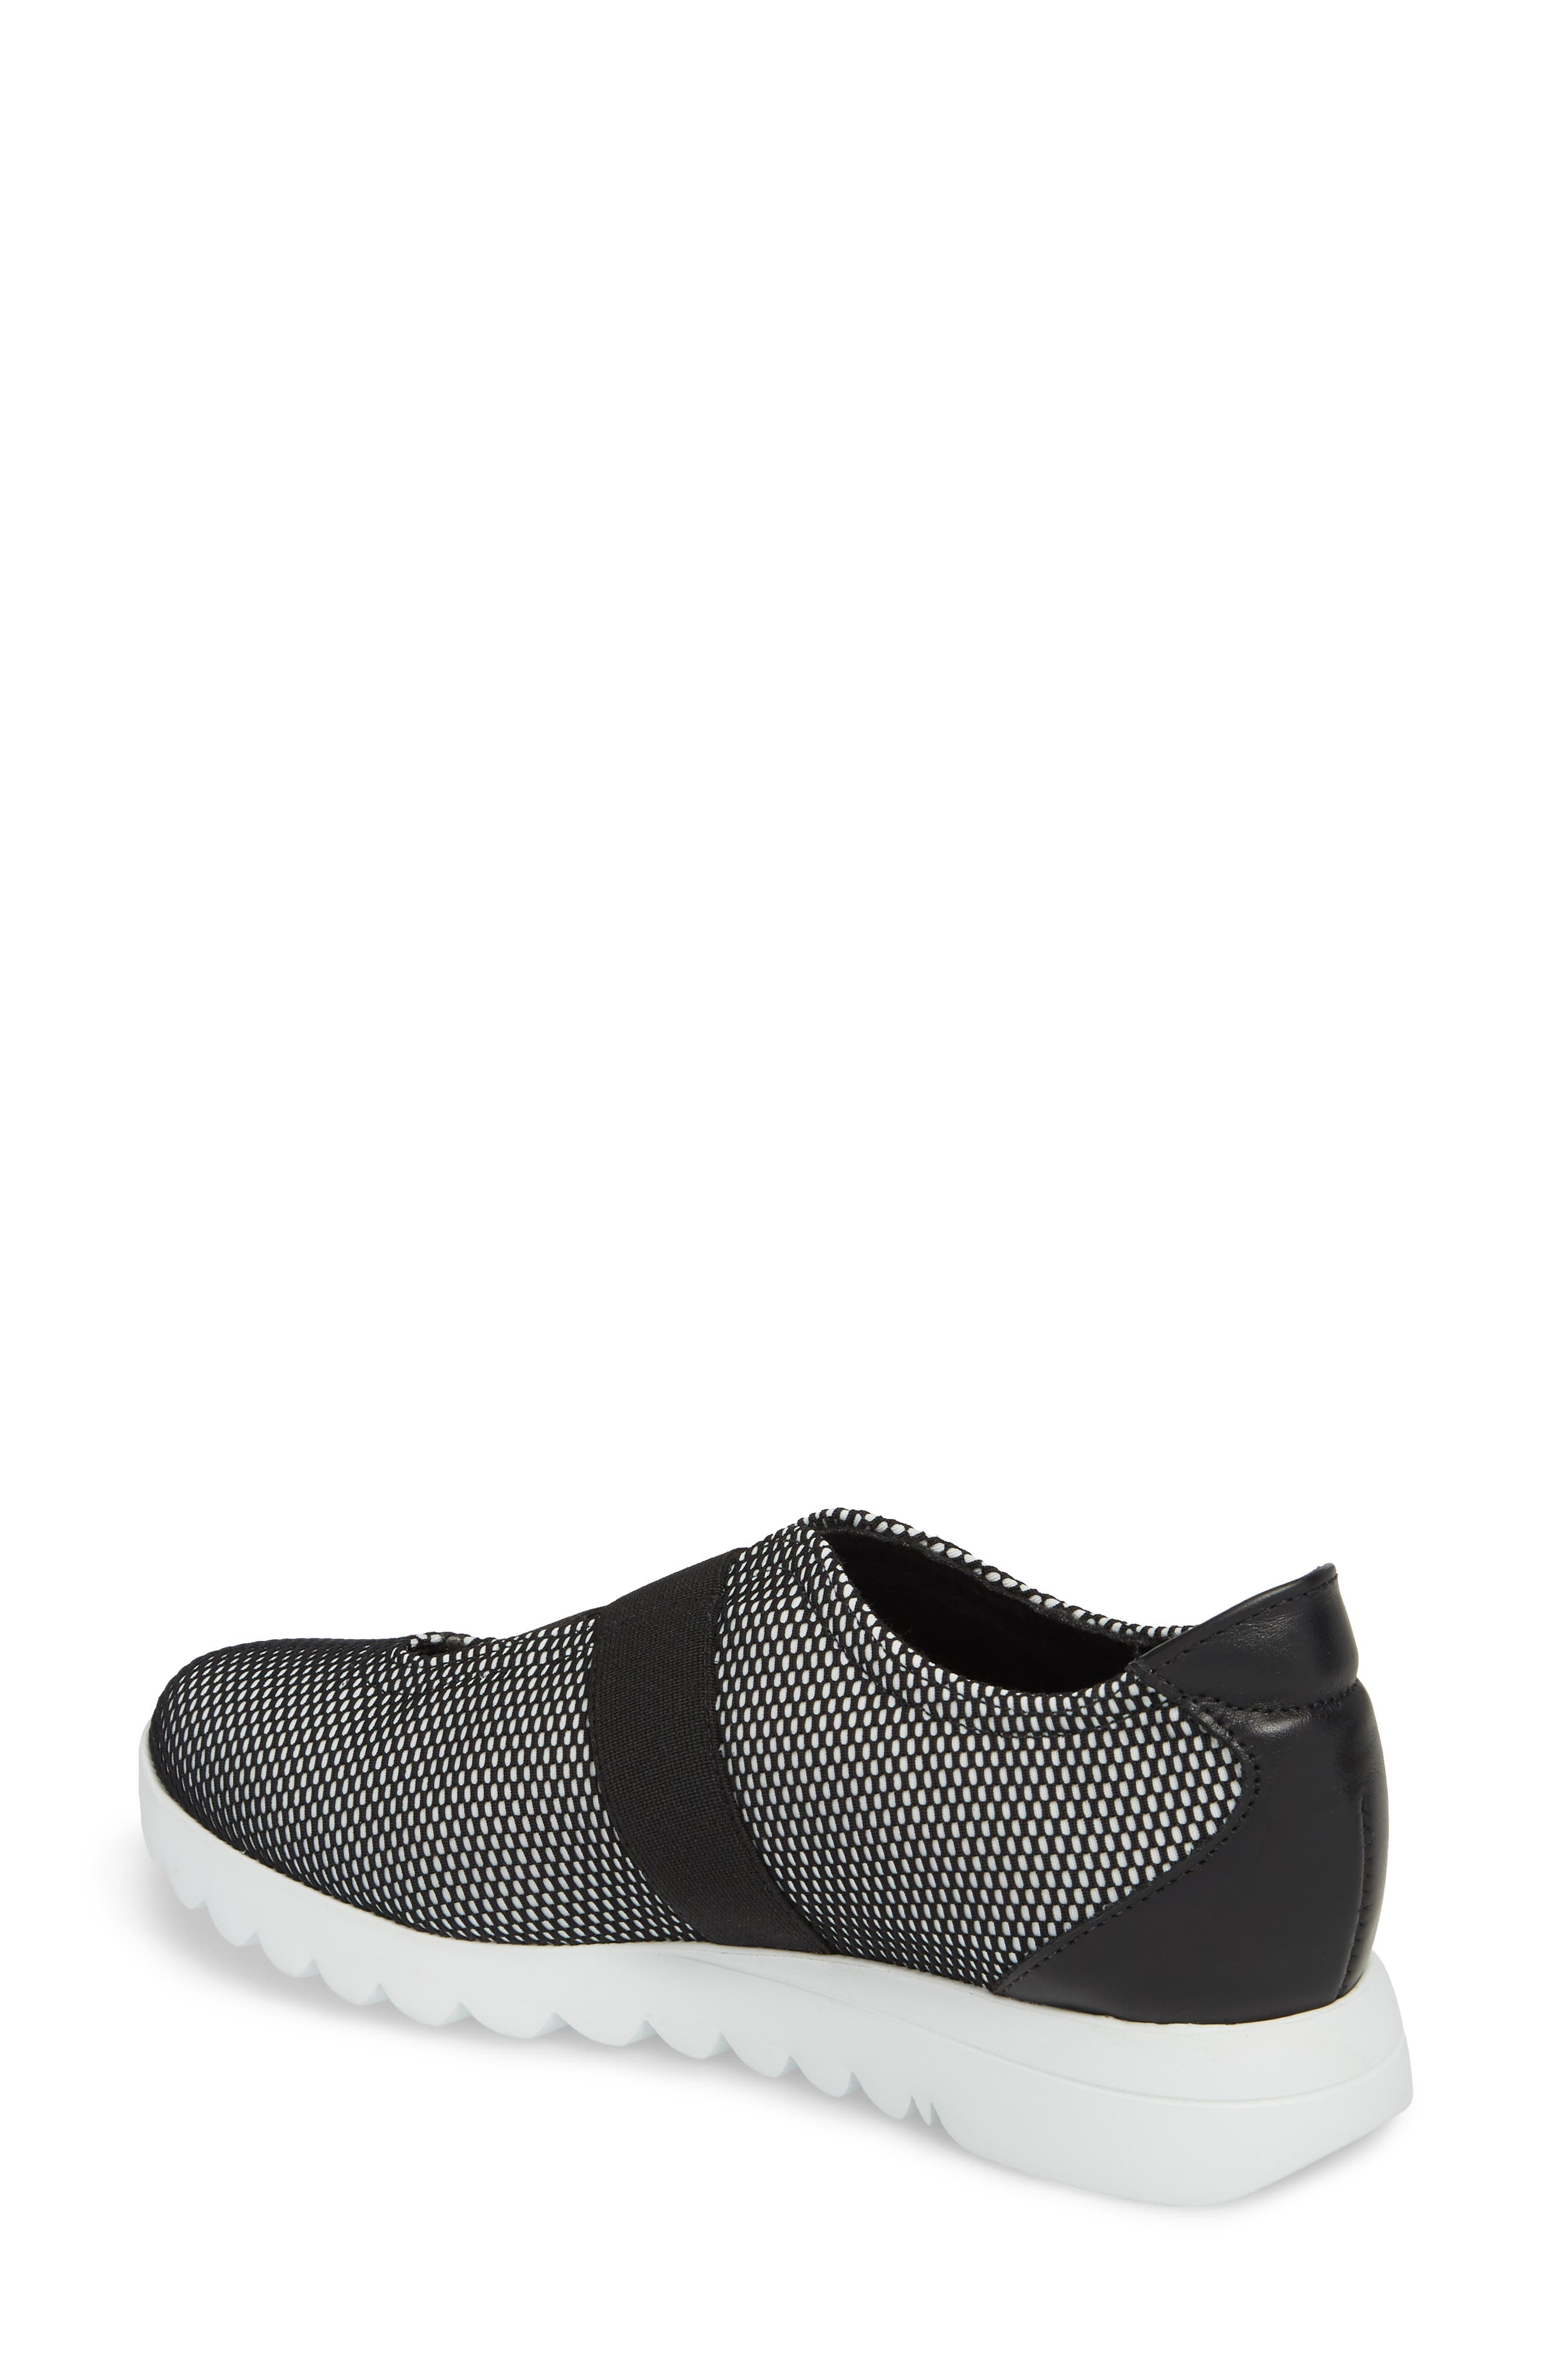 Alta Slip-On Sneaker,                             Alternate thumbnail 2, color,                             BLACK/ WHITE FABRIC